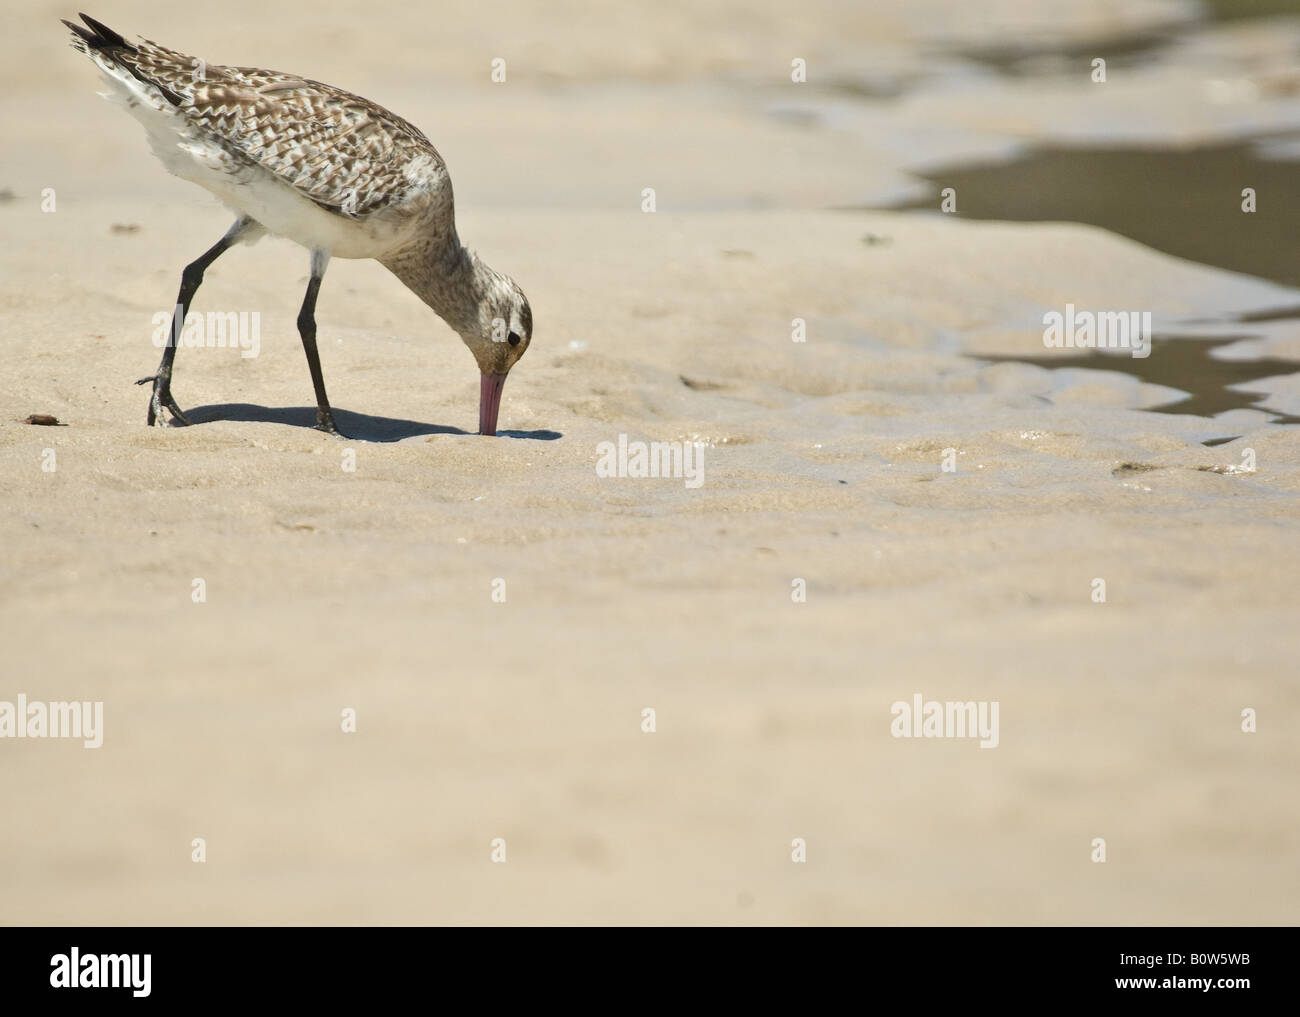 sand piper looks for food at the beach - Stock Image